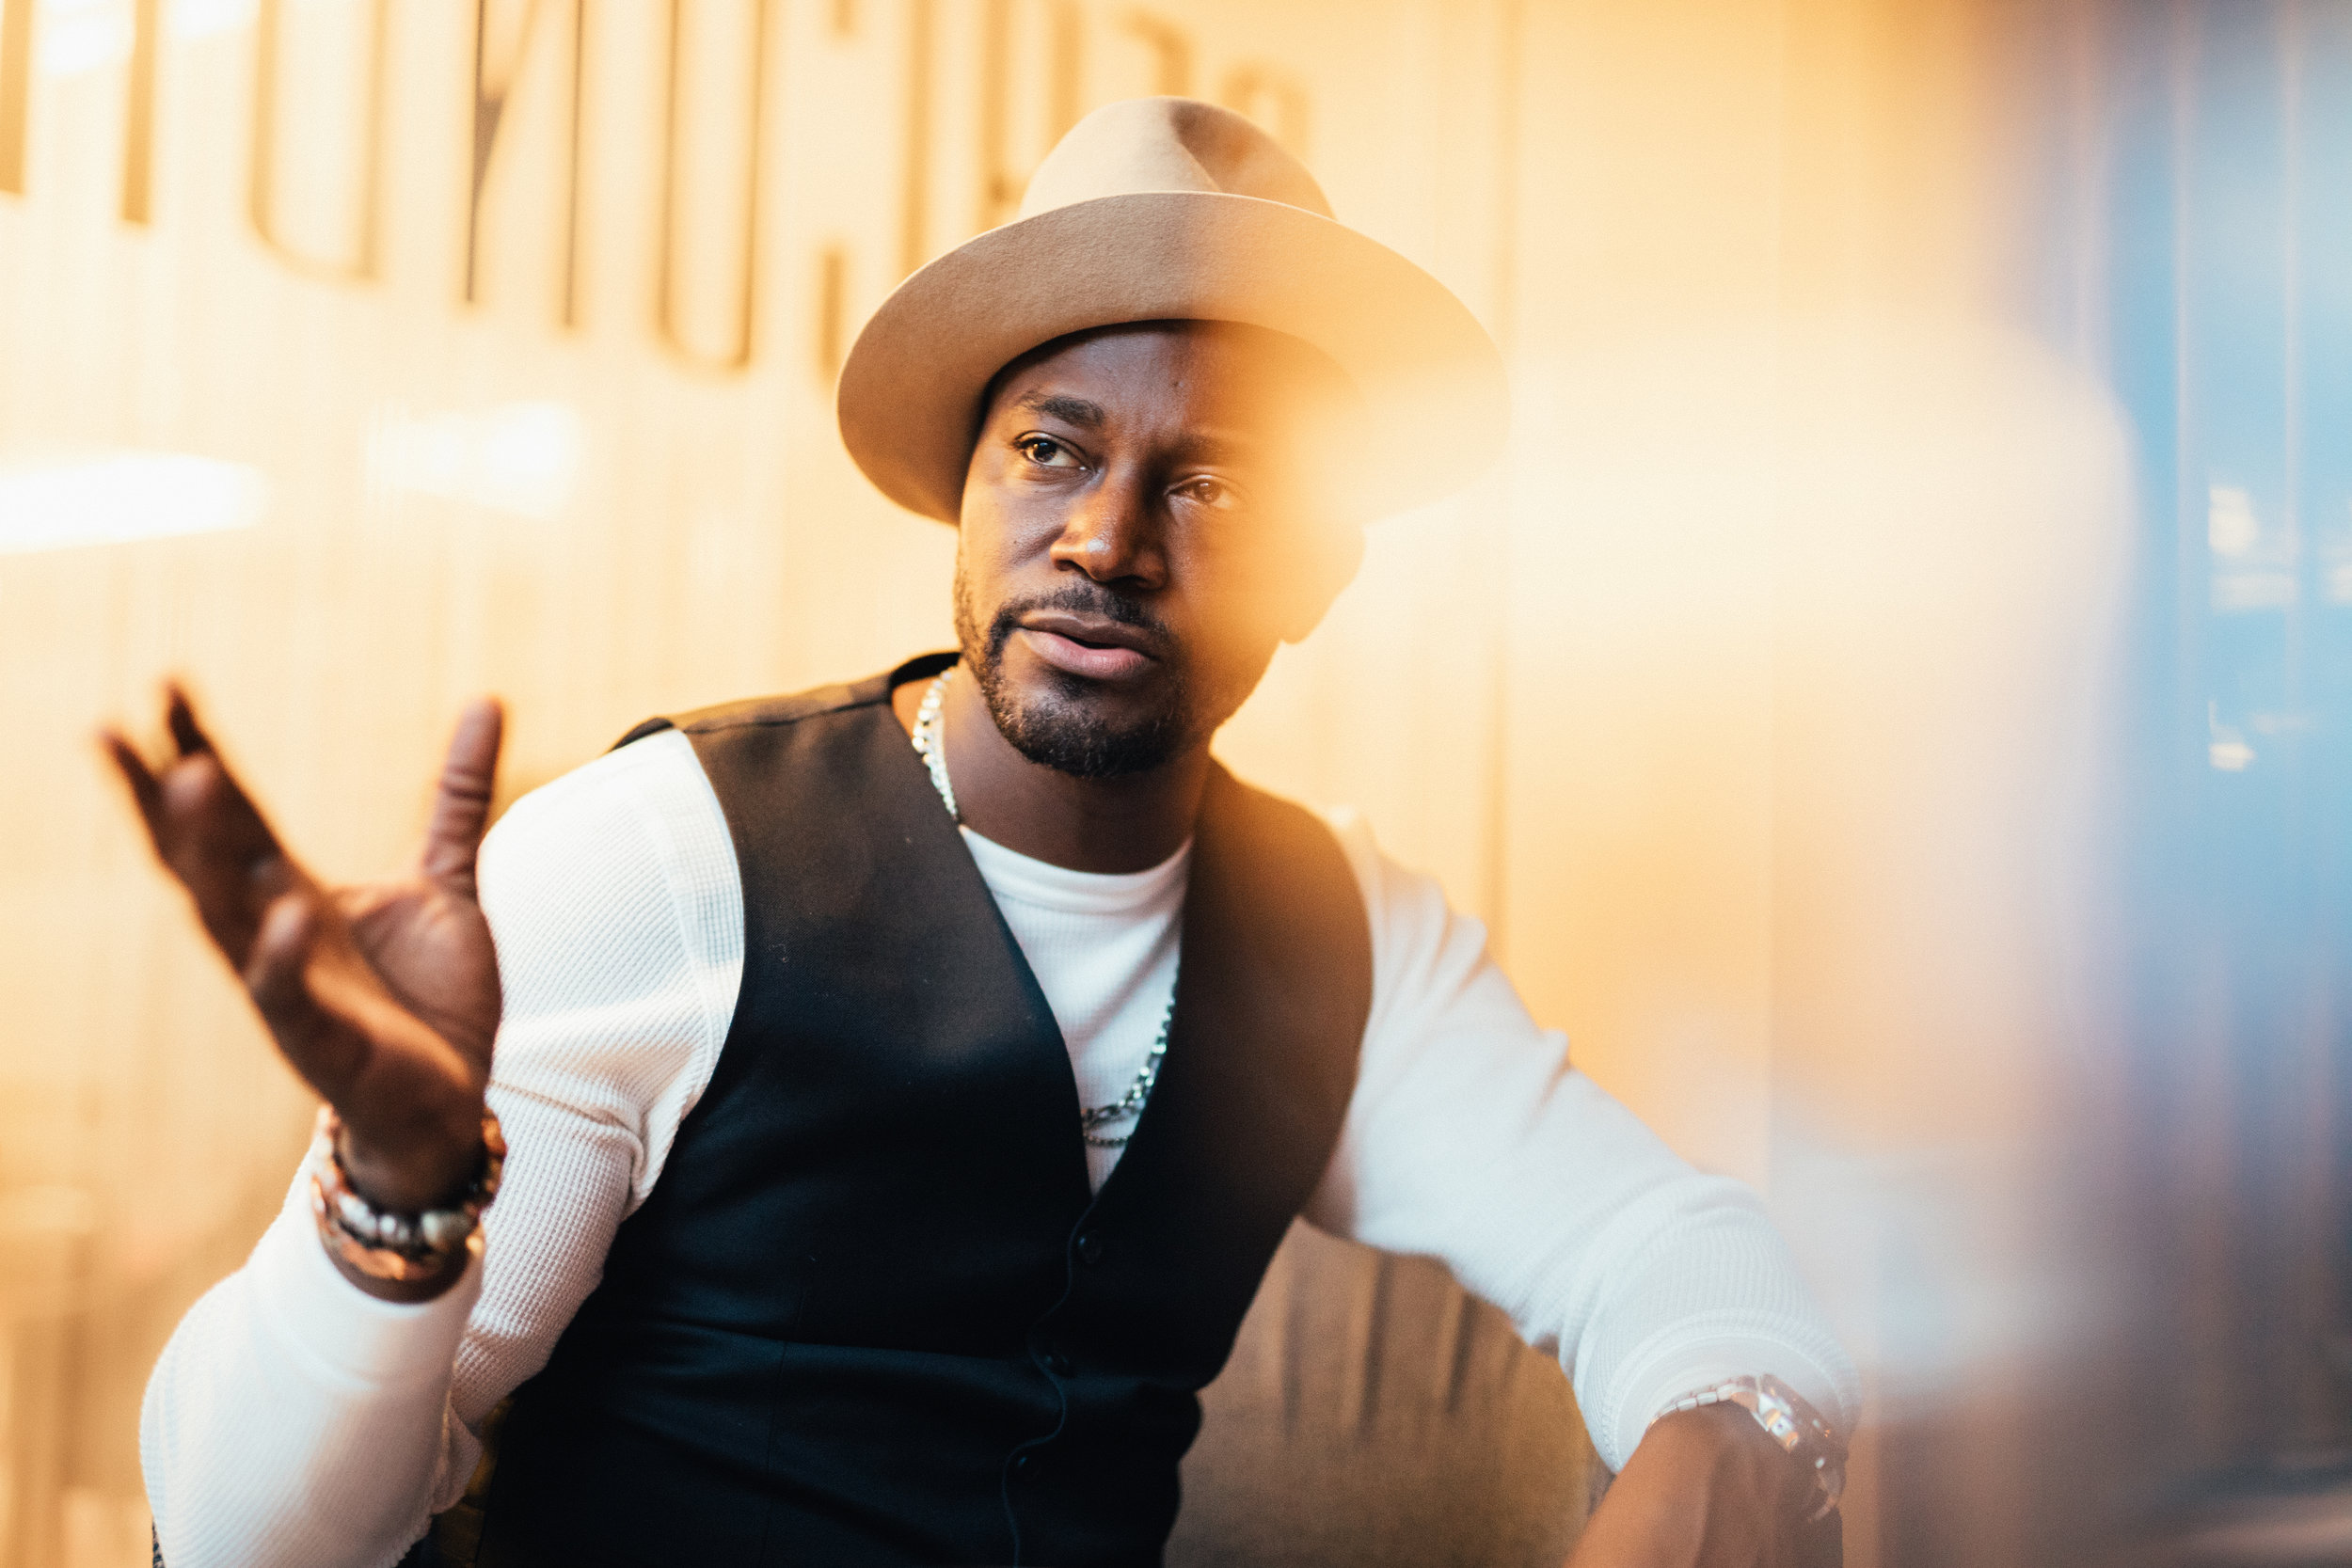 Taye Diggs for The New York Times